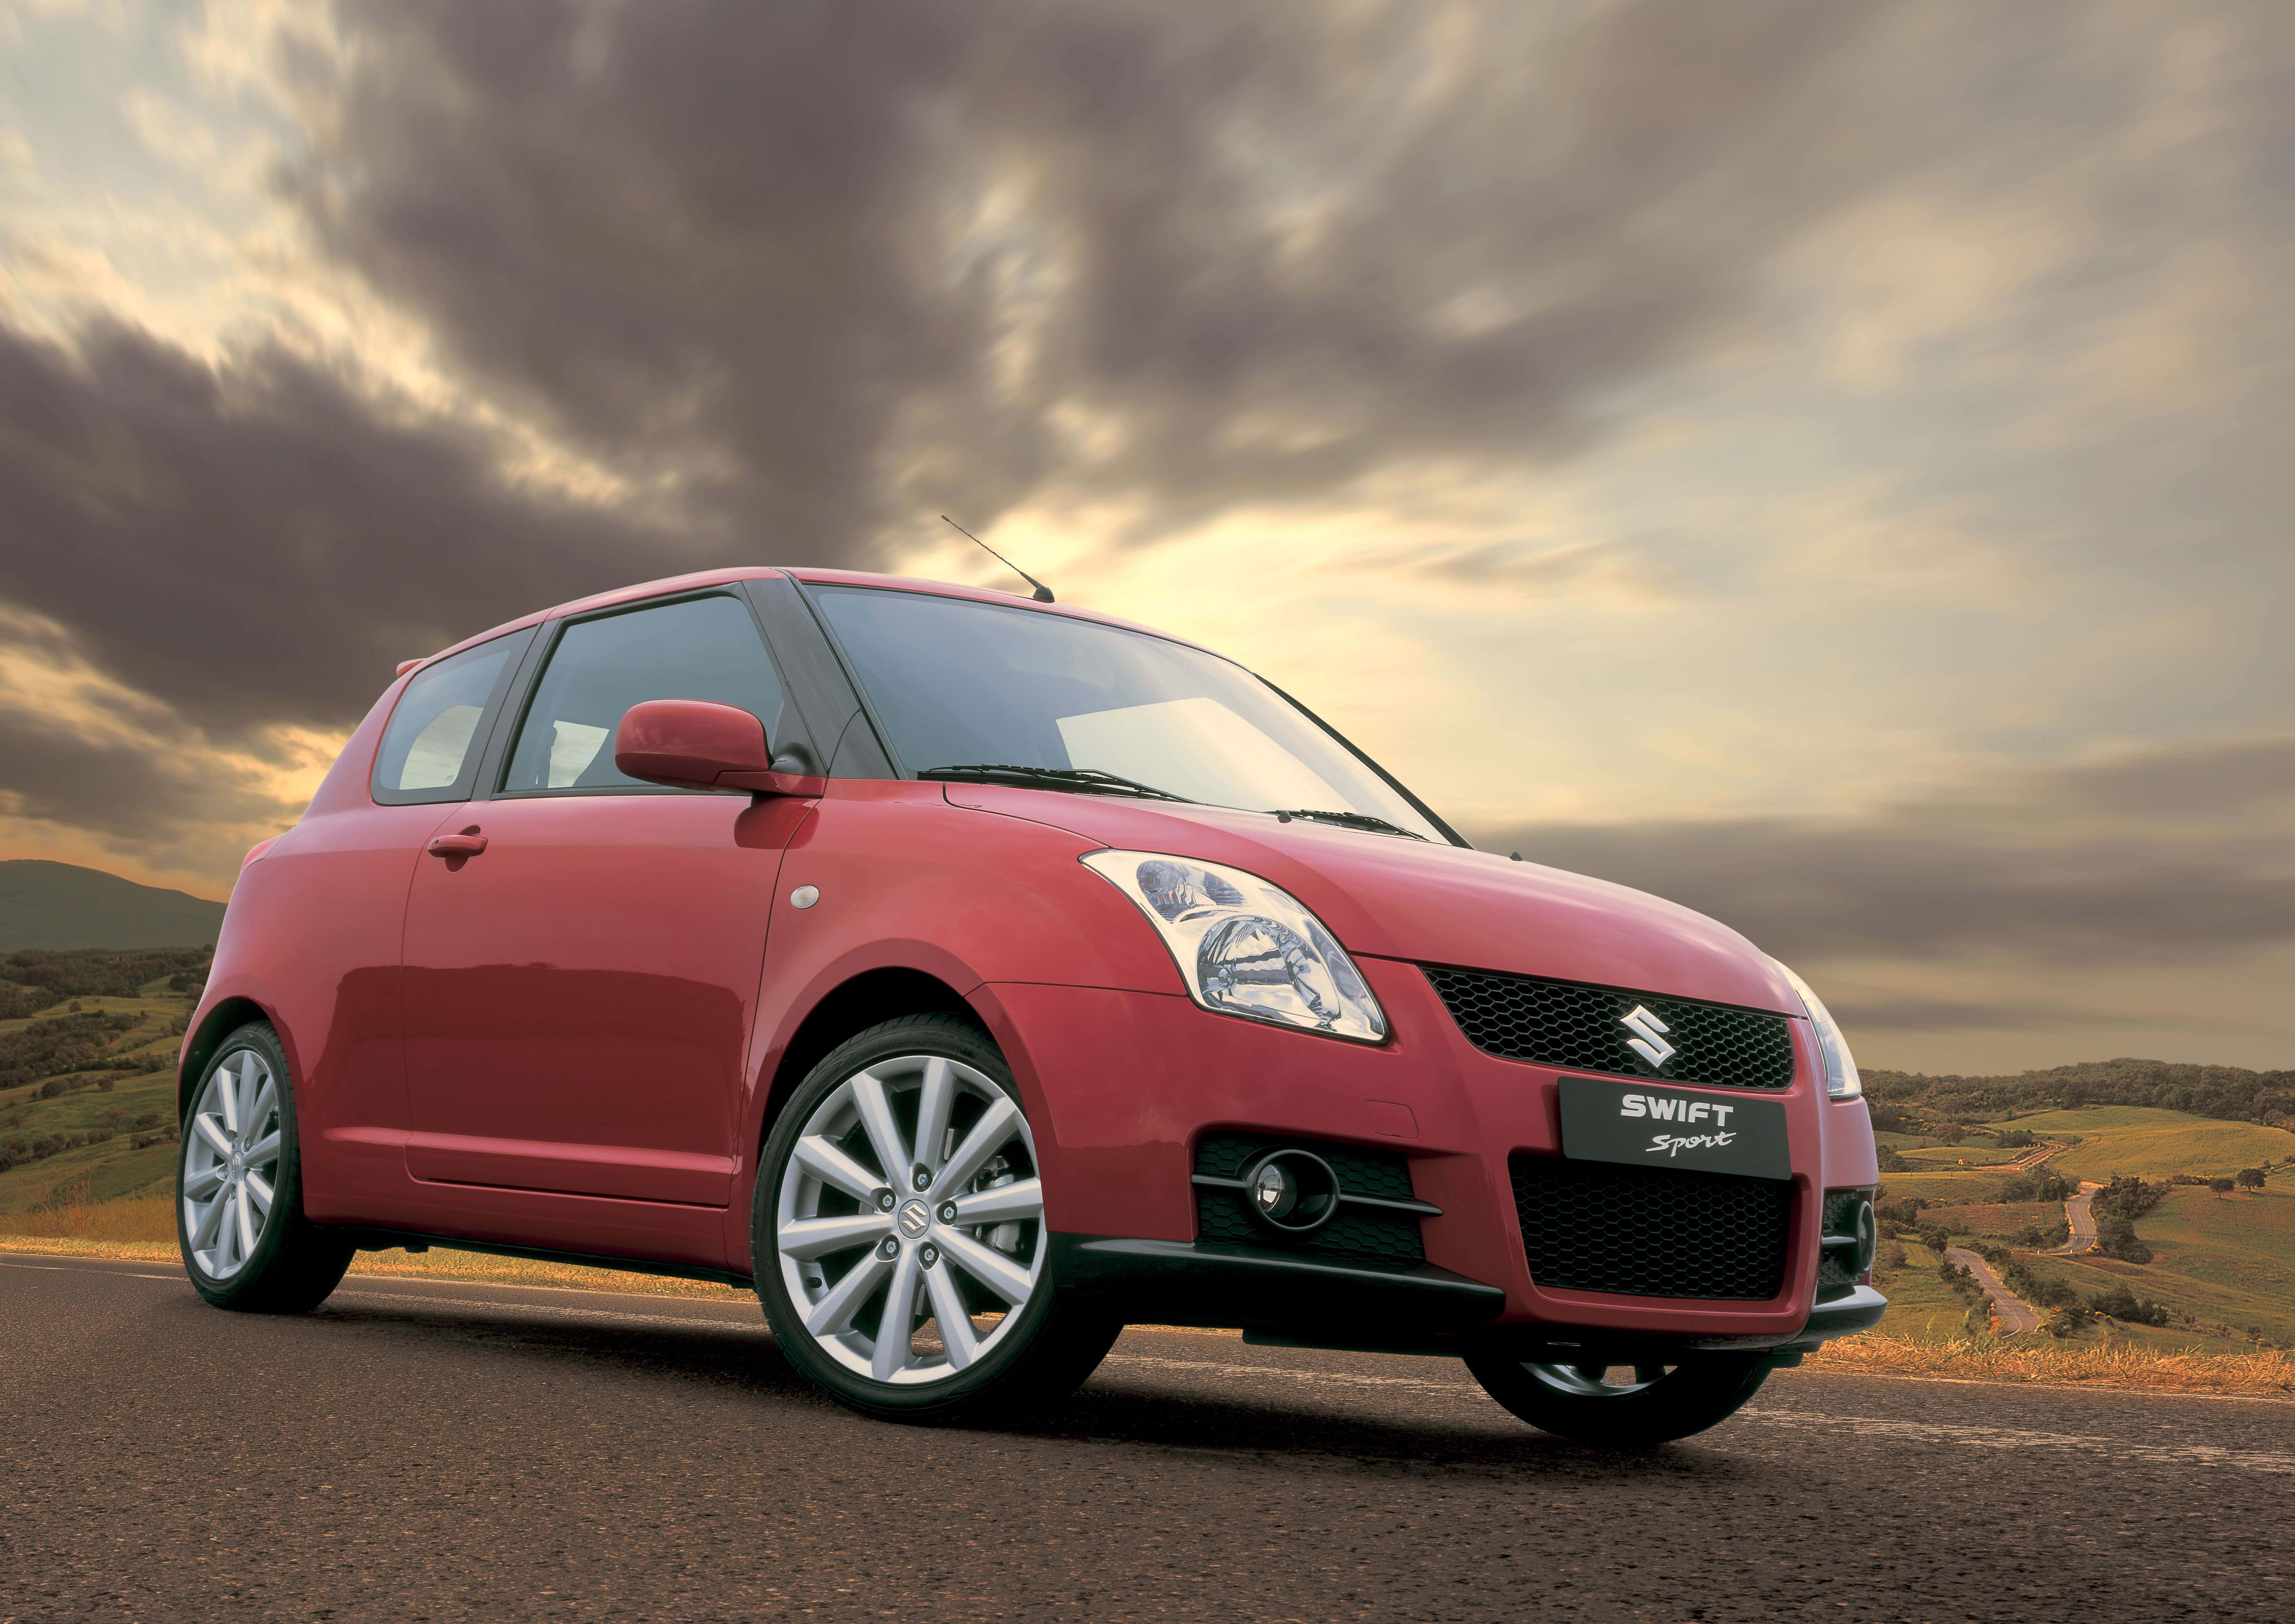 Suzuki Swift Sport, Suzuki, Swift, Sport, Suzuki, Swift, hot hatch, hatchback, hot hatch, motoring, automotive, cars, fun car, exciting car, classic car, retro car, car sales, bargain car, cheap car, motoring, automotive, car, cars, subaru justy, subaru, top gear,